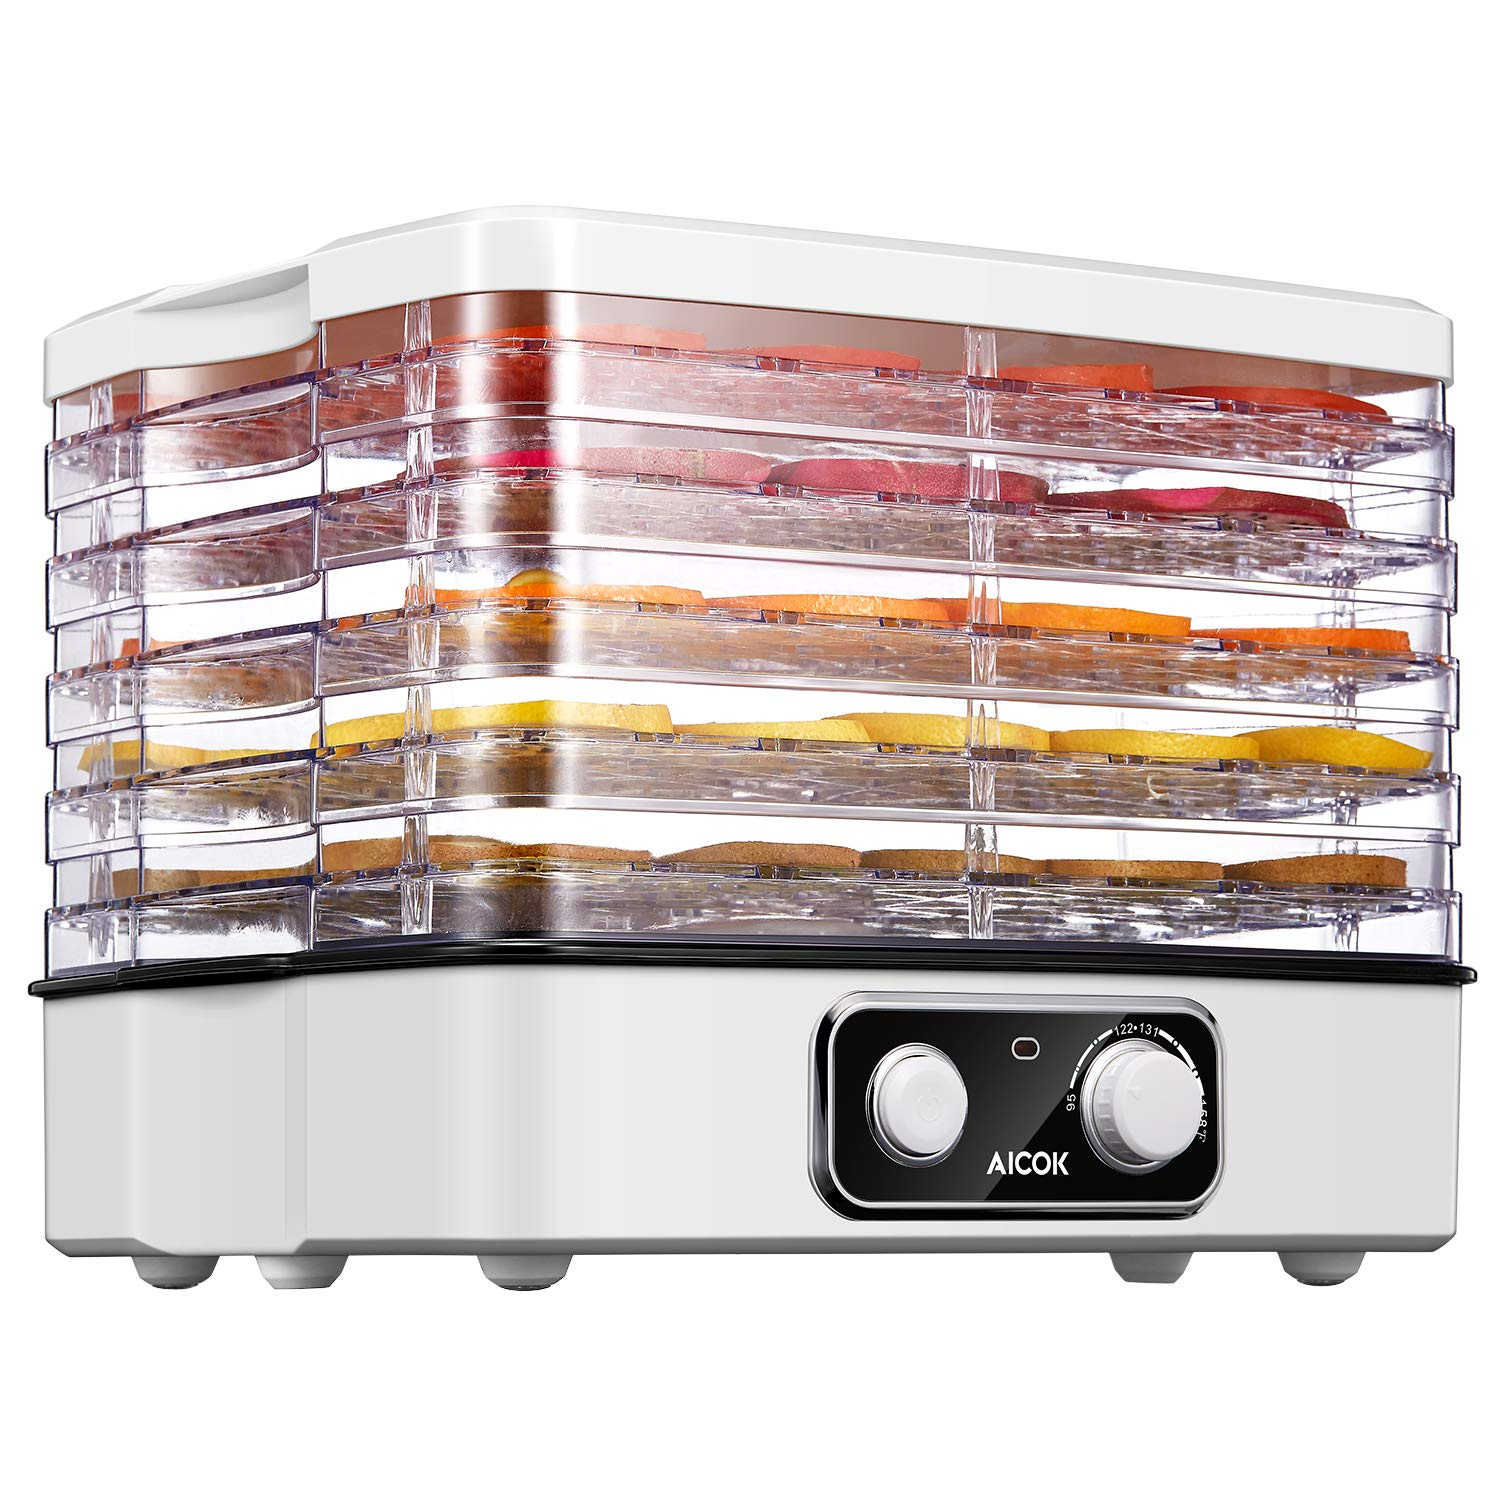 AICOK Food Dehydrator, 5-Tray Food Dehydrator Machine with Temperature Settings for Jerky, Meat, Fruit, Vegetable & Herb, Extensible Capacity, BPA-Free, ETL & FDA Certified by AICOK